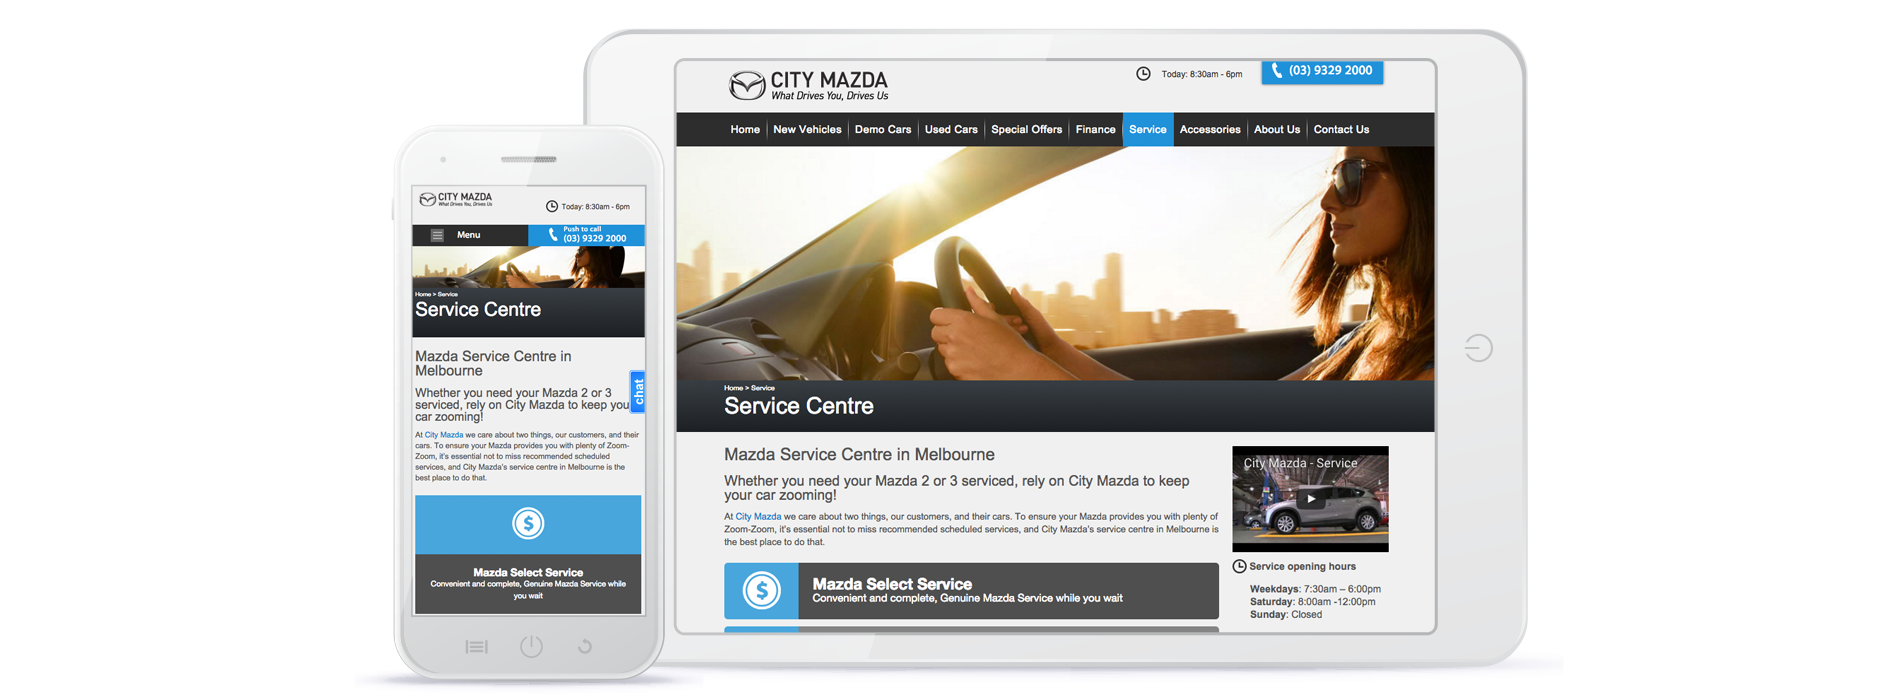 city-mazda-screens